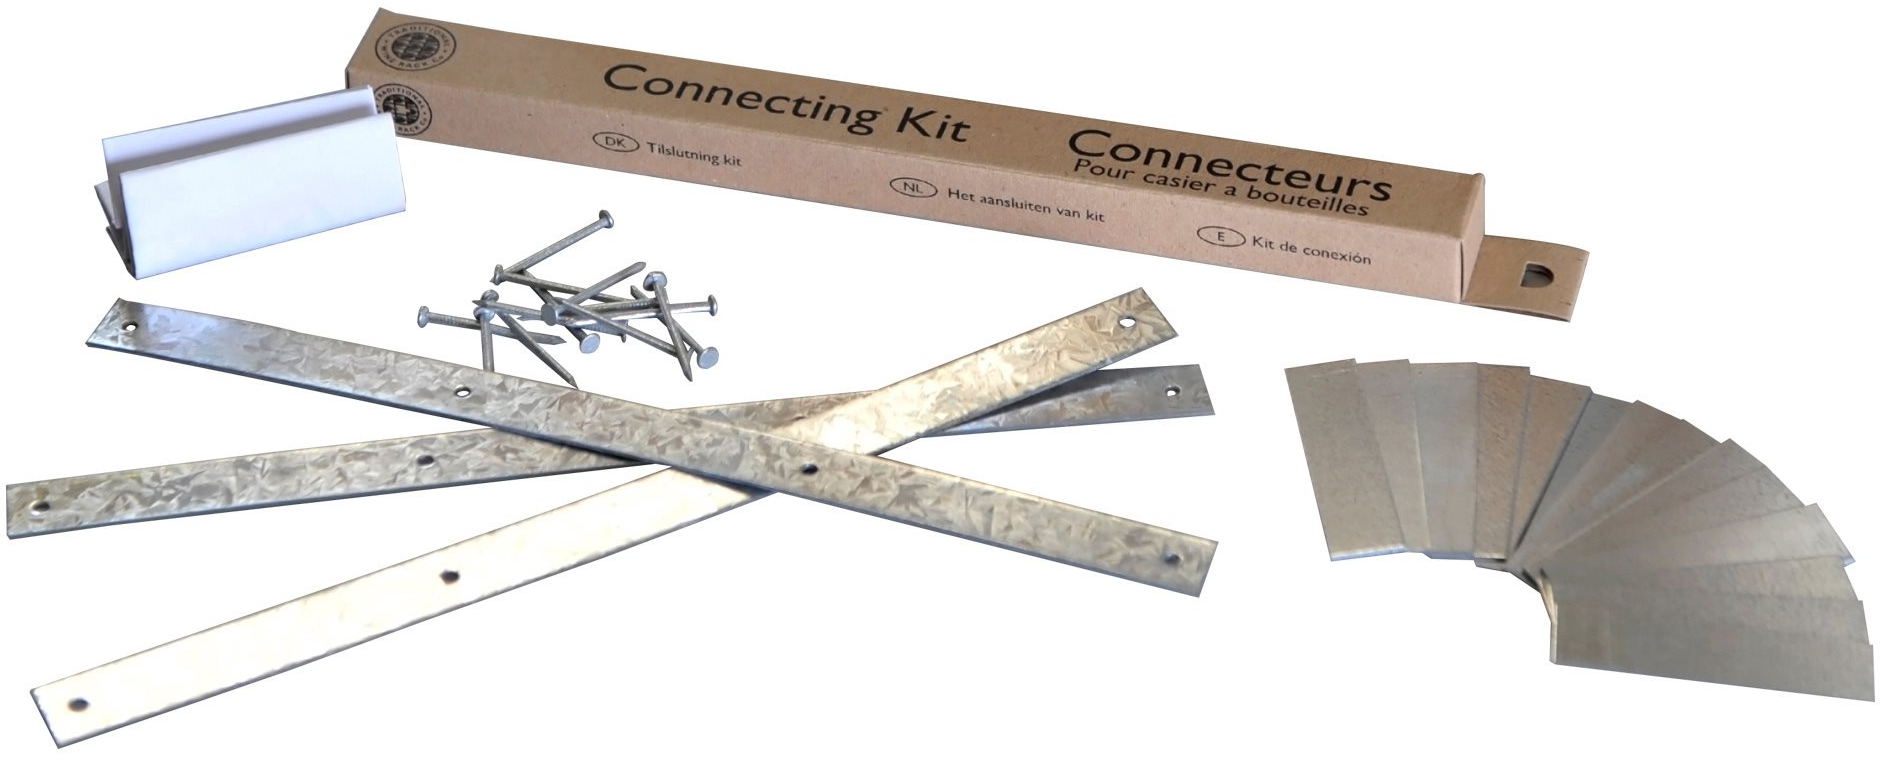 Traditional Wine Rack Co. Connector Kit